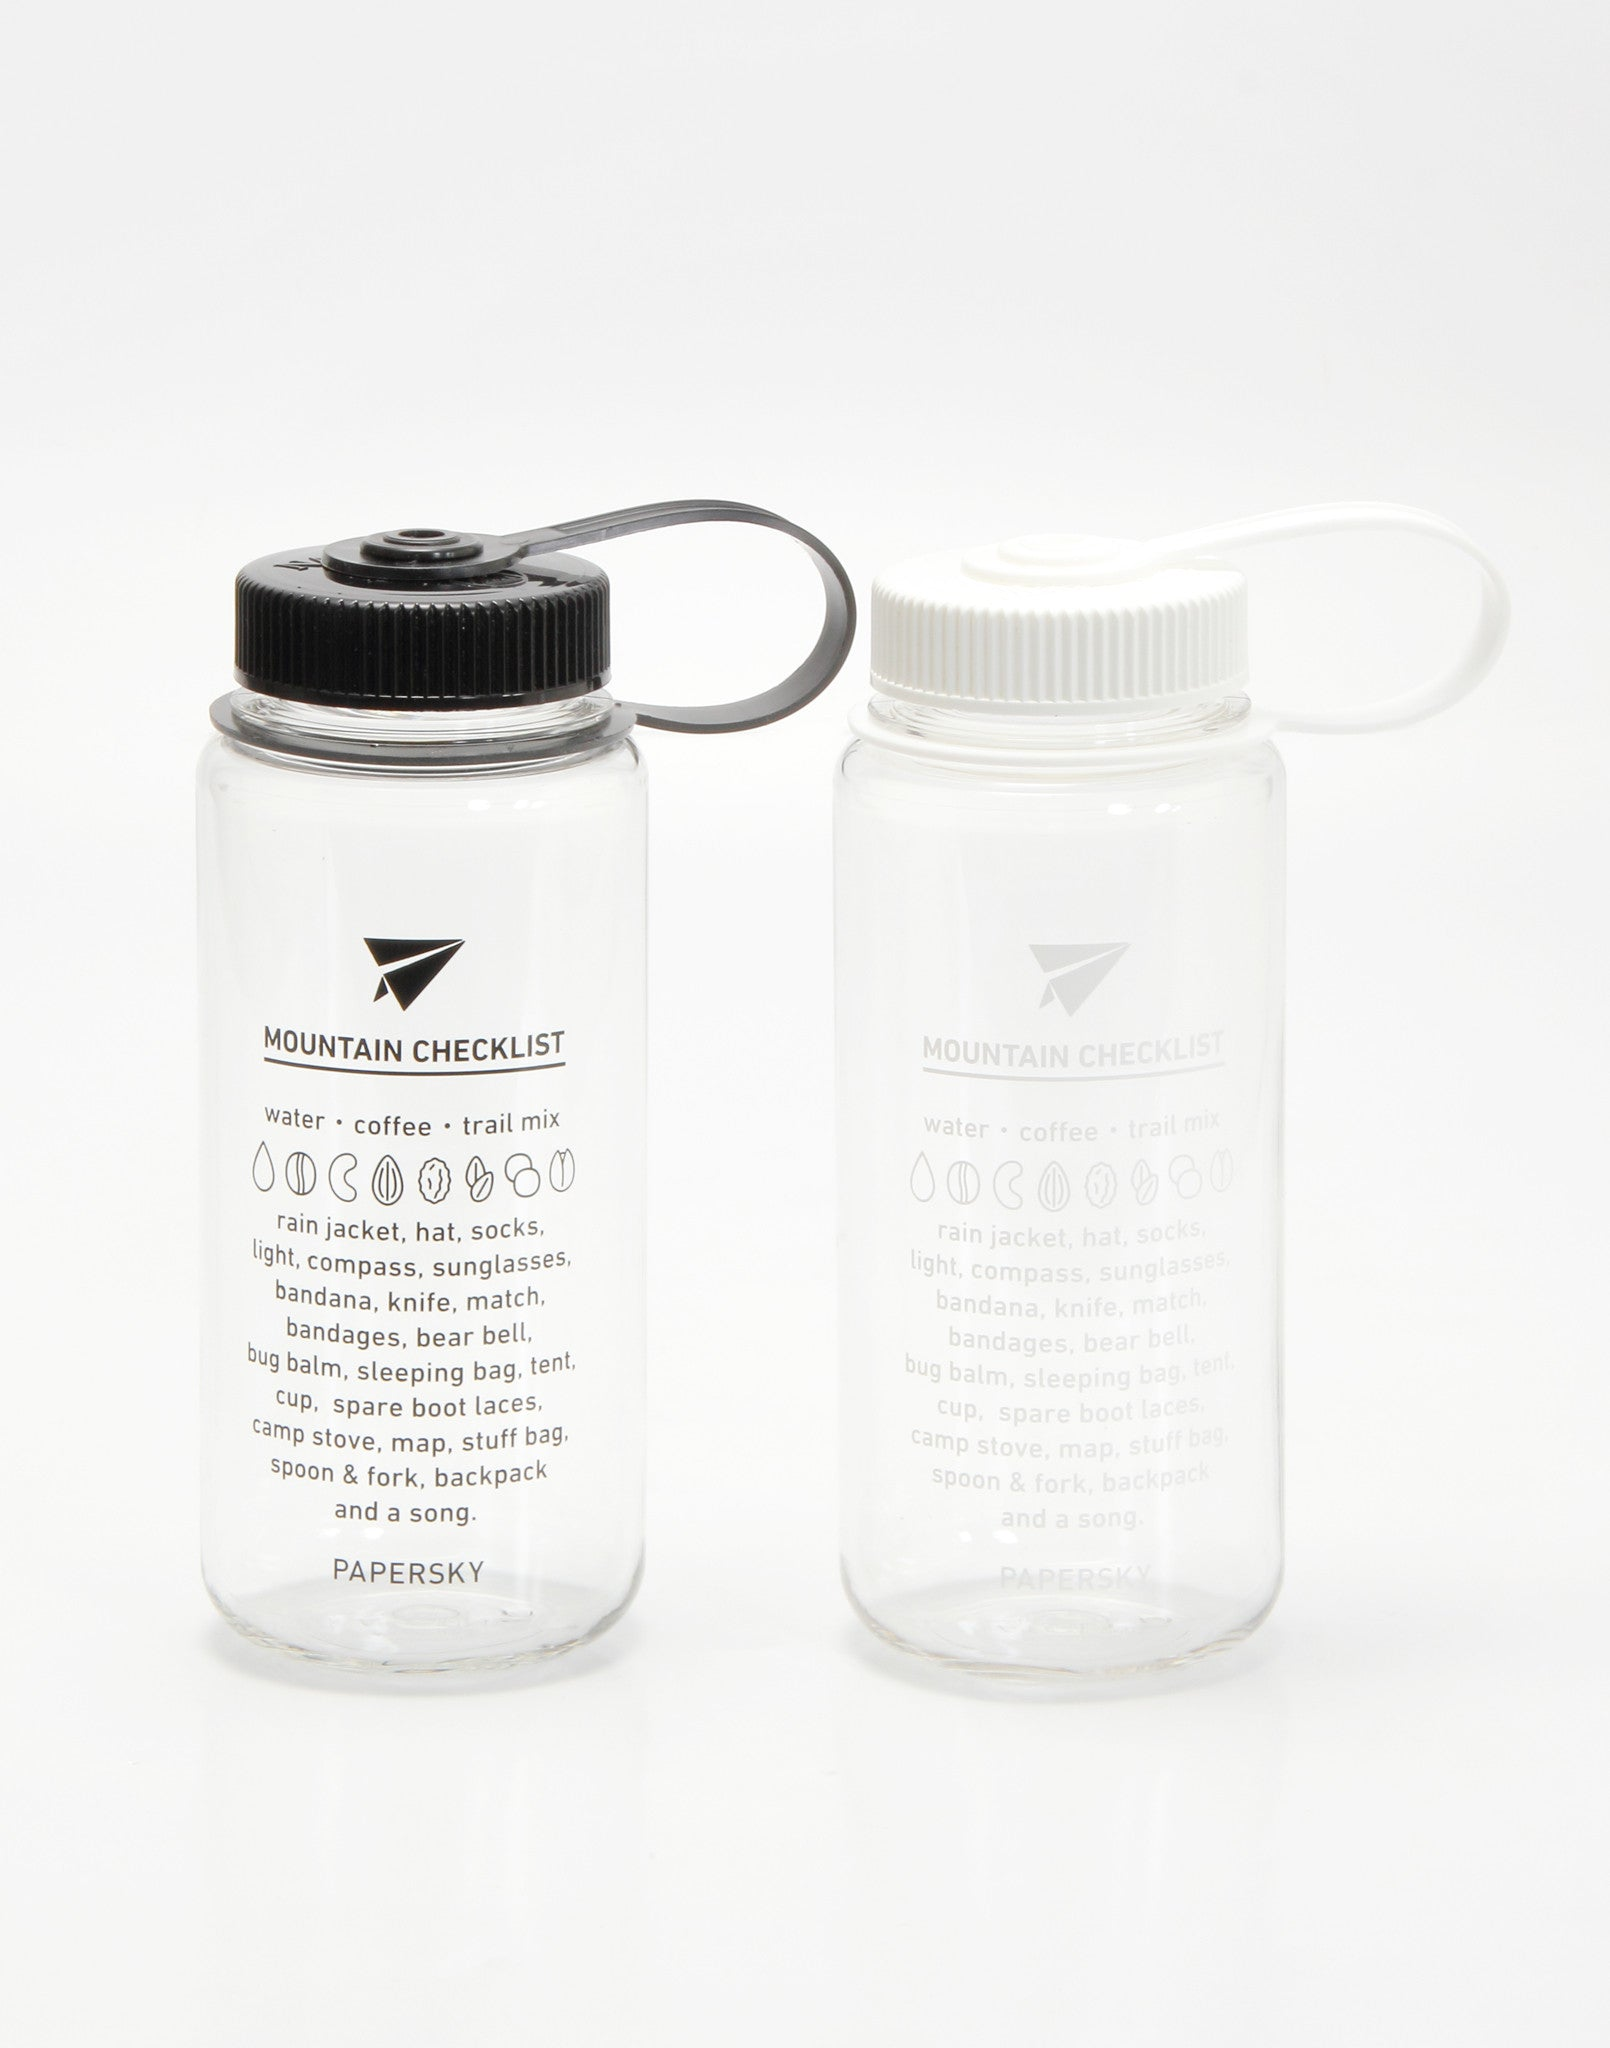 ボトル | Nalgene Bottle (500ml) - PAPERSKY STORE  - 1